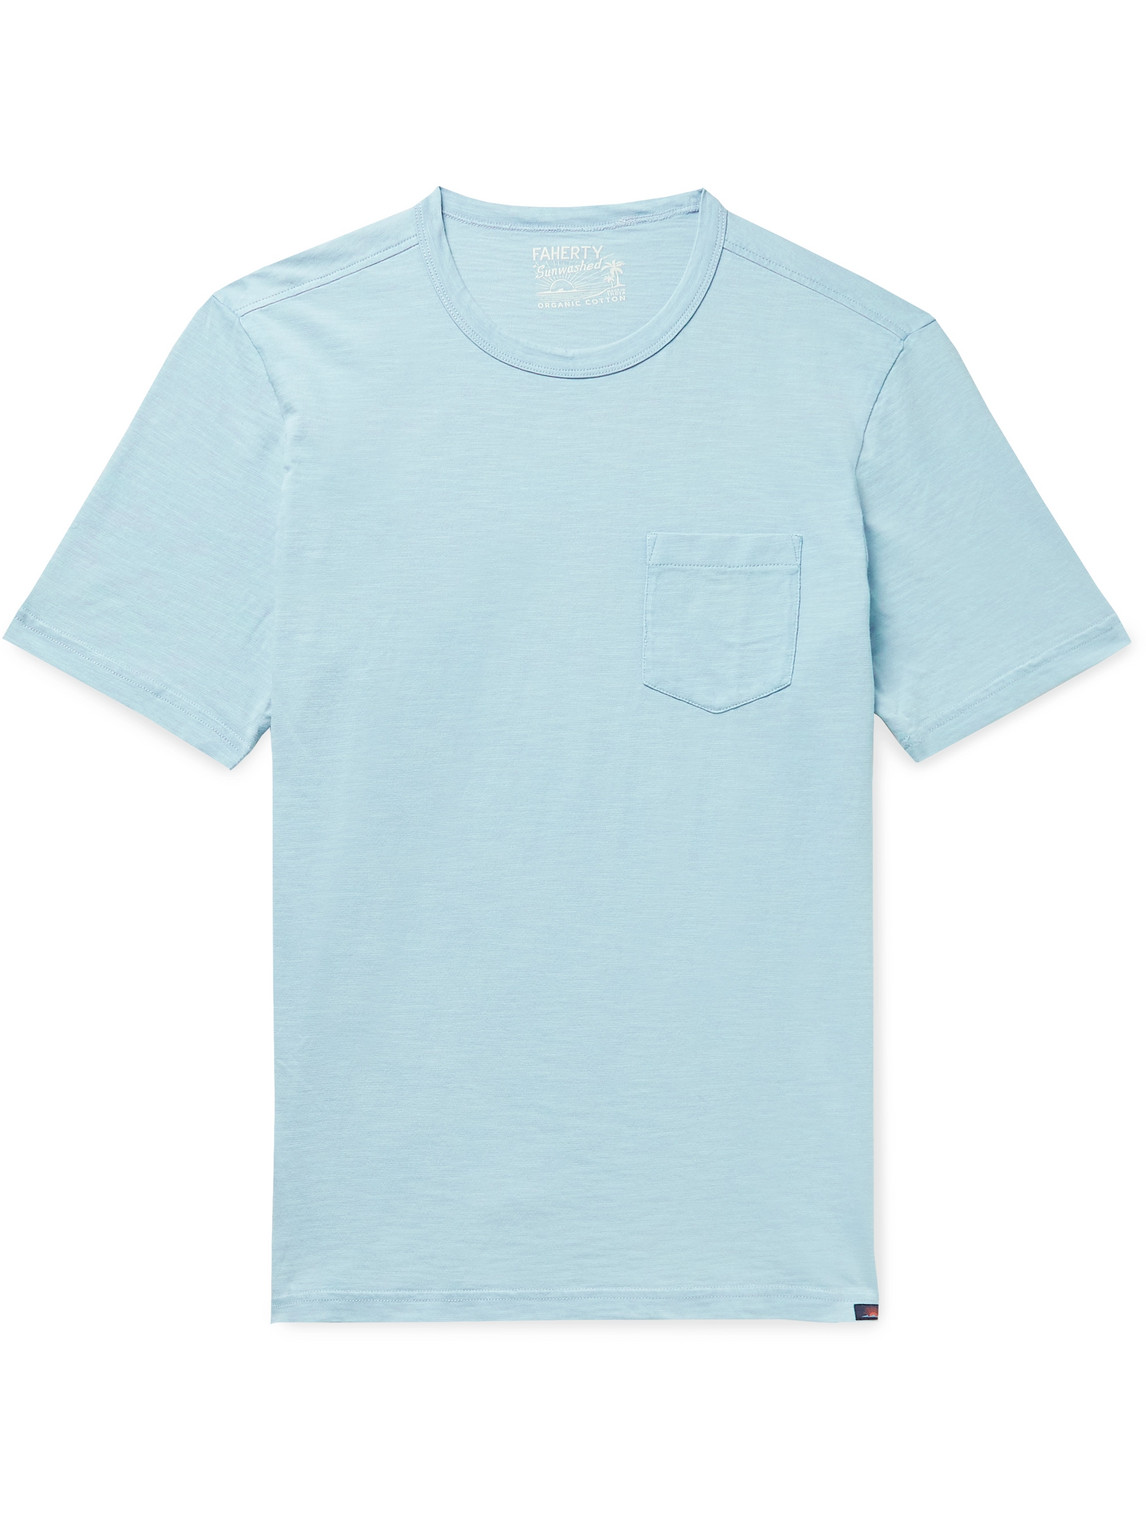 Faherty Cottons SUNWASHED ORGANIC COTTON-JERSEY T-SHIRT